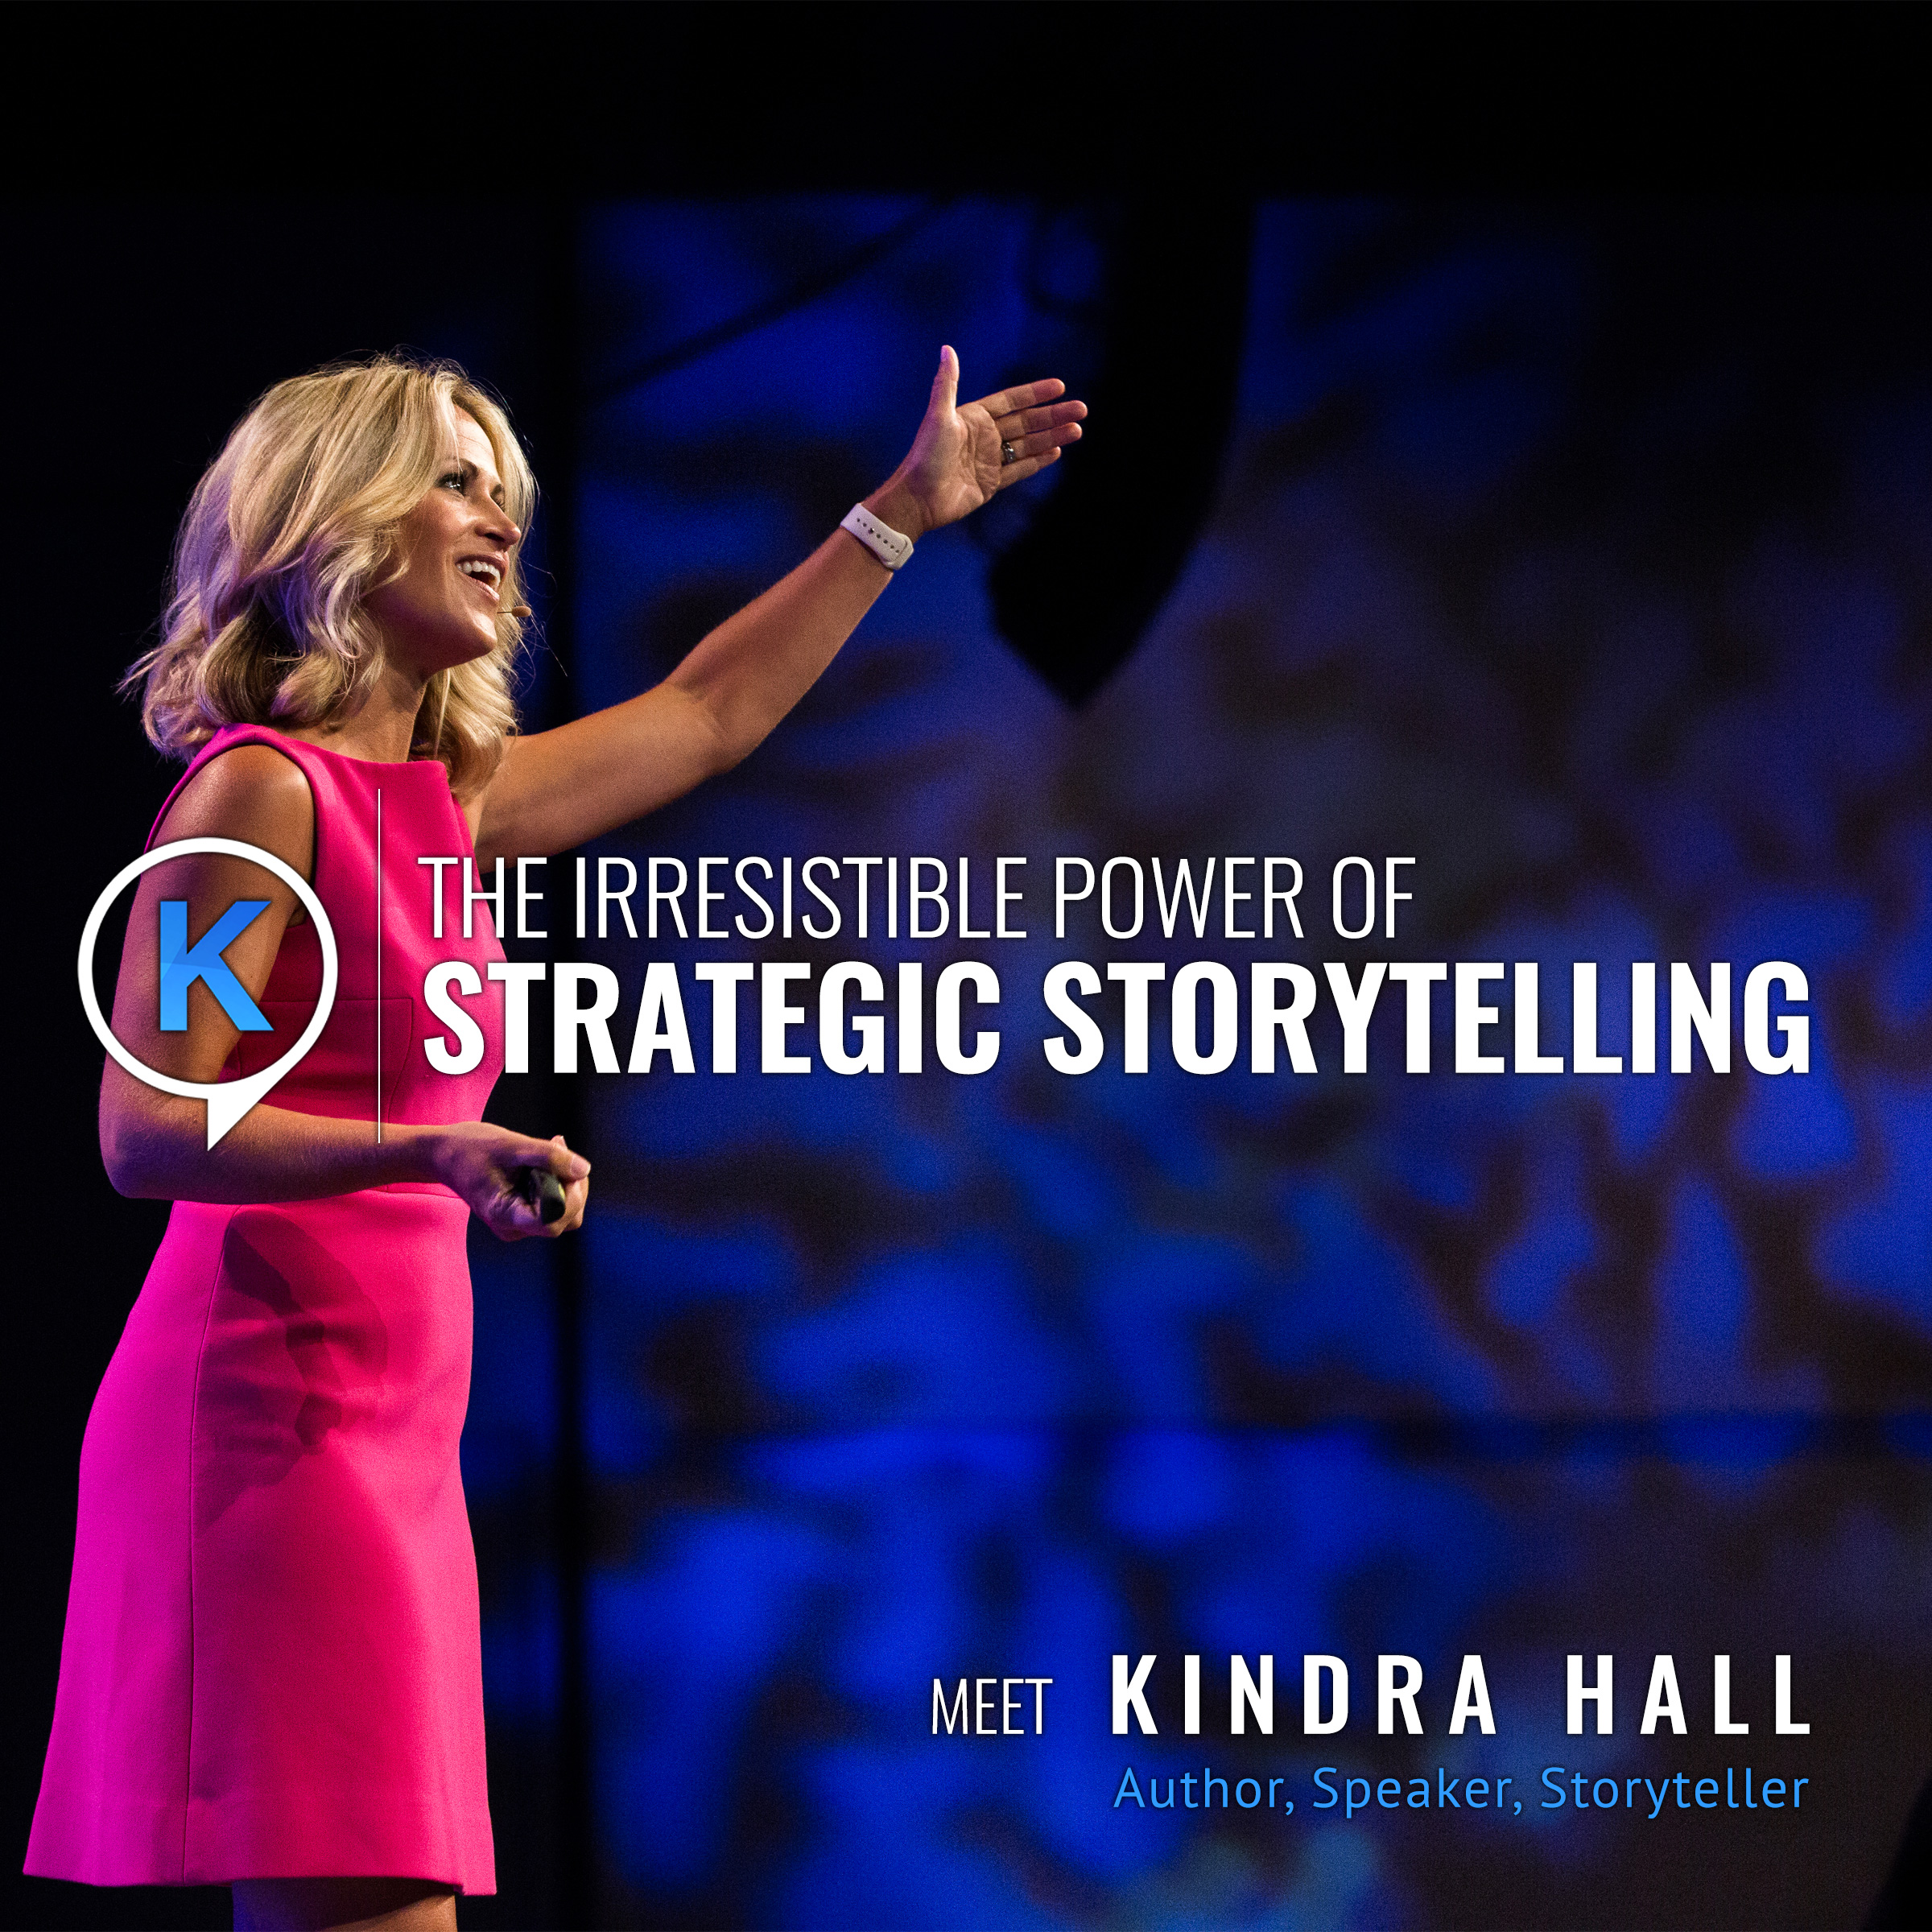 Meet Kindra Hall